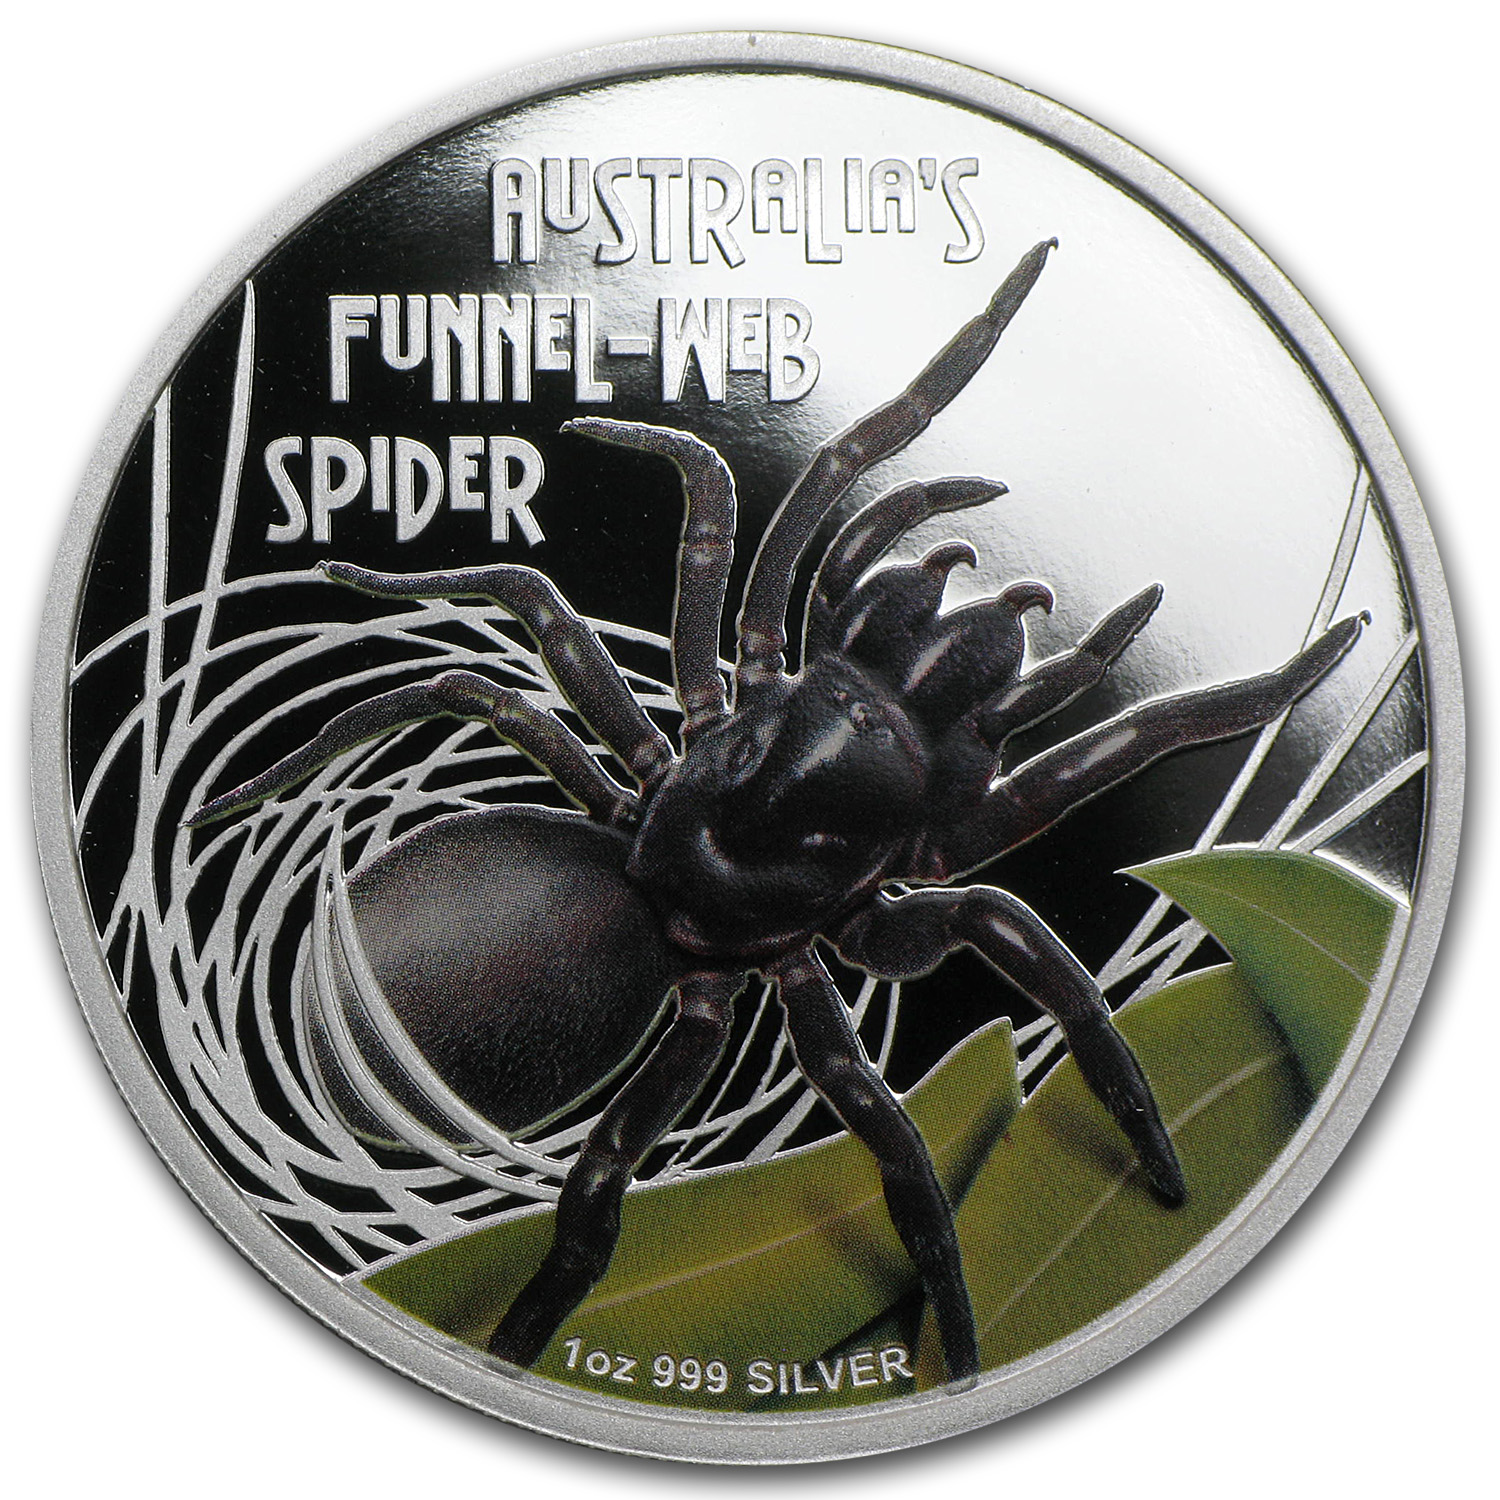 2012 Tuvalu 1 oz Silver Funnel-Web Spider Proof